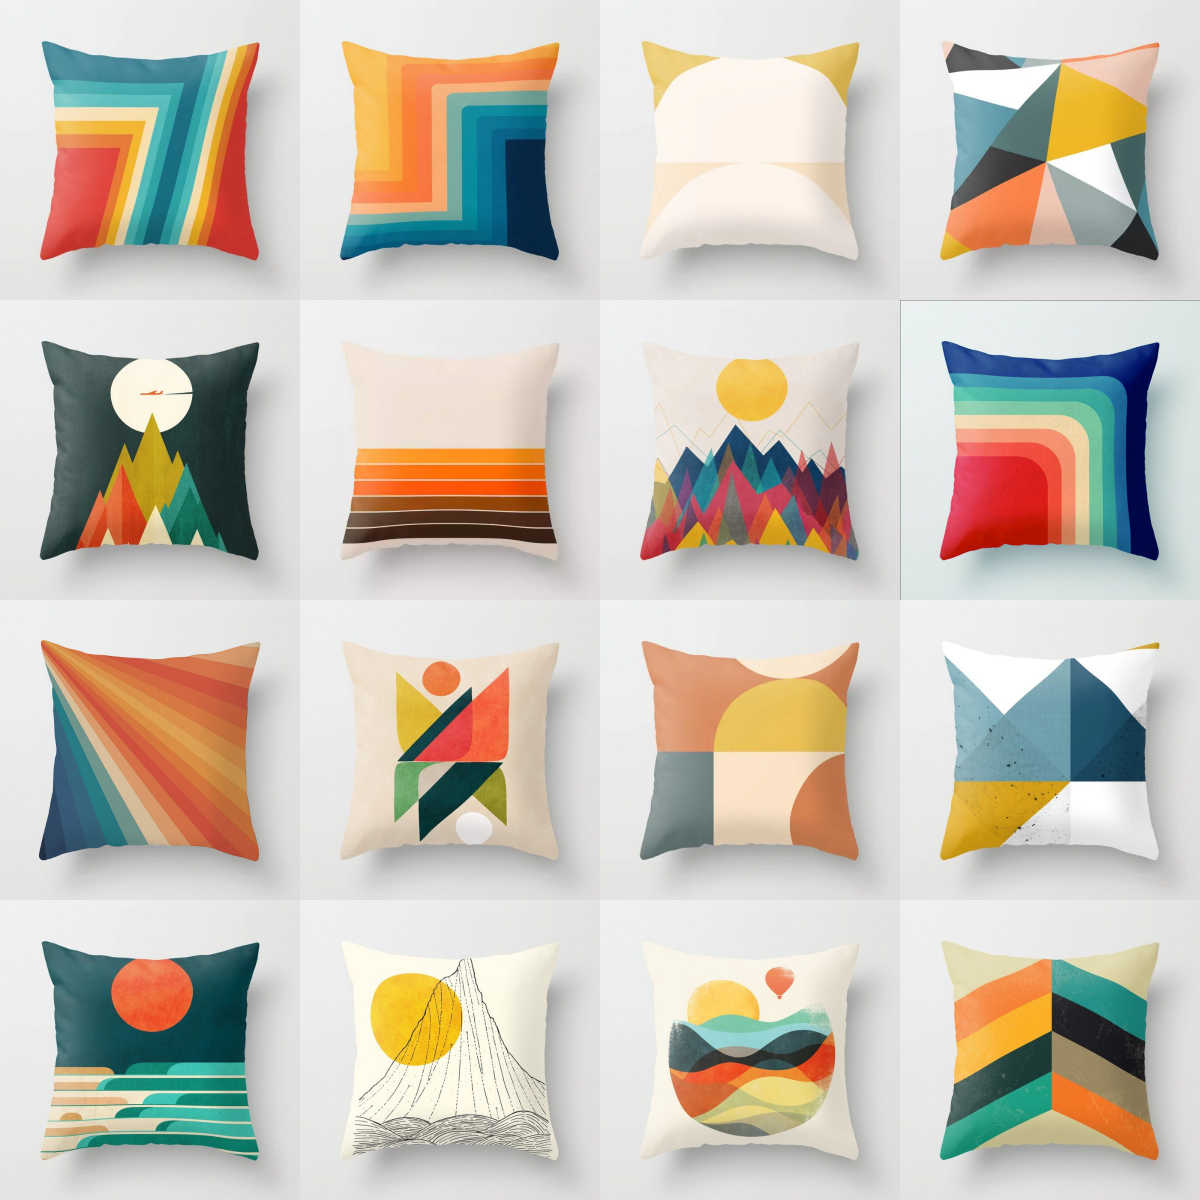 Creative Geometry Polyester Cushion Cover Modern Abstract Art Pillow Case Christmas Livingroom Sofa Bed Seats Decorative Pillows Cushion Cover Aliexpress